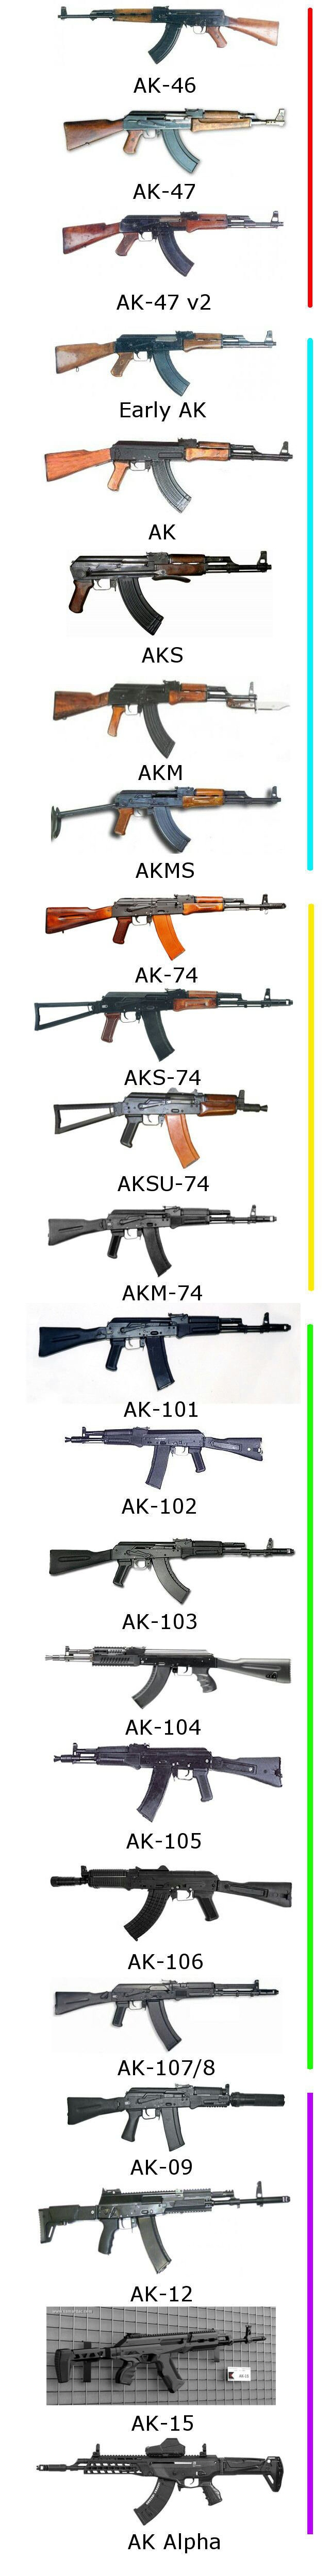 Not only AK-47